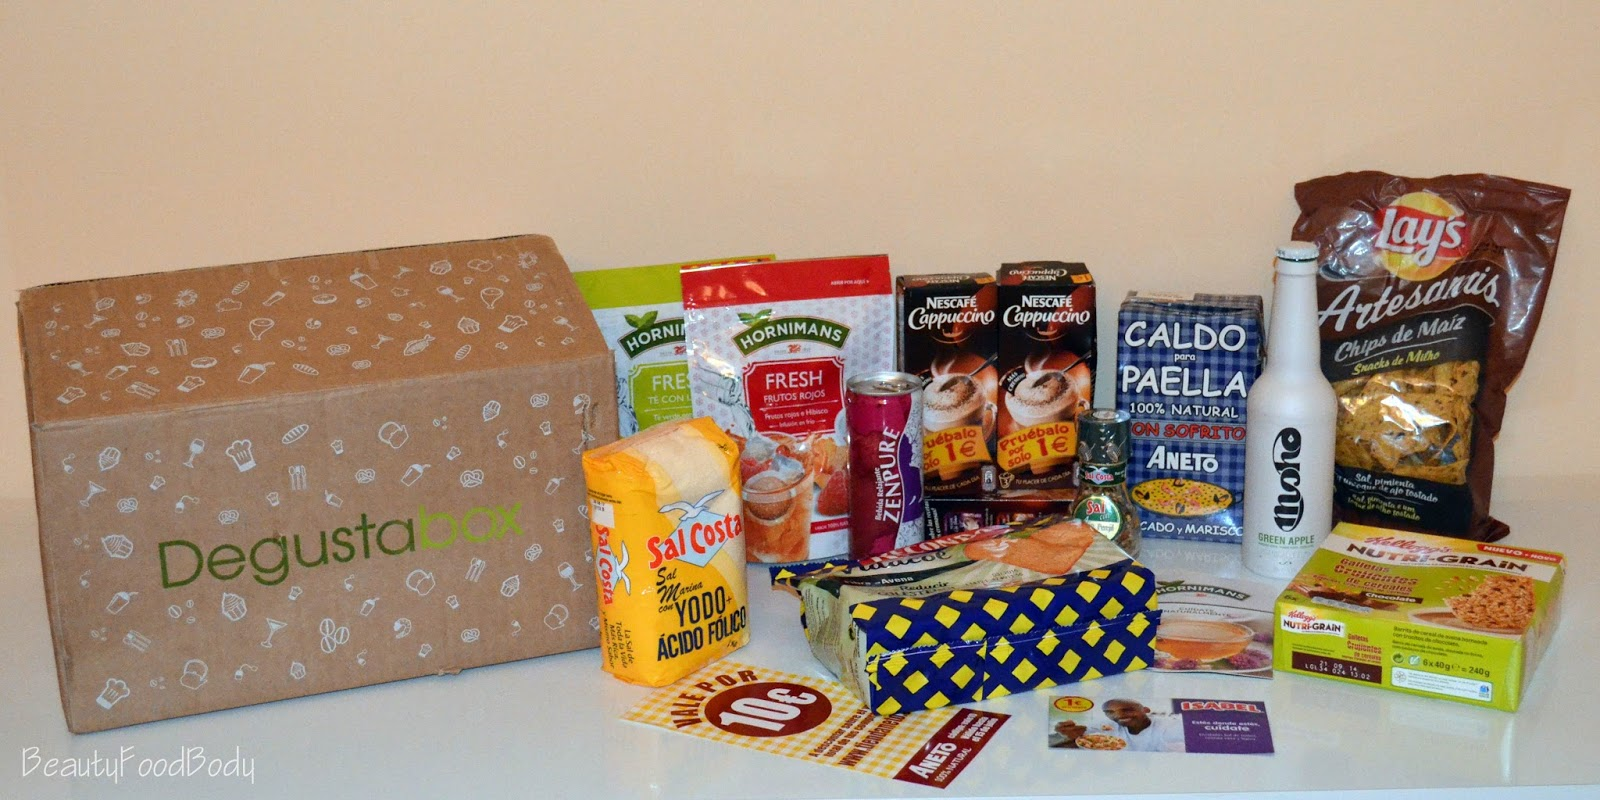 review degustabox junio 2014 beautyfoodbody